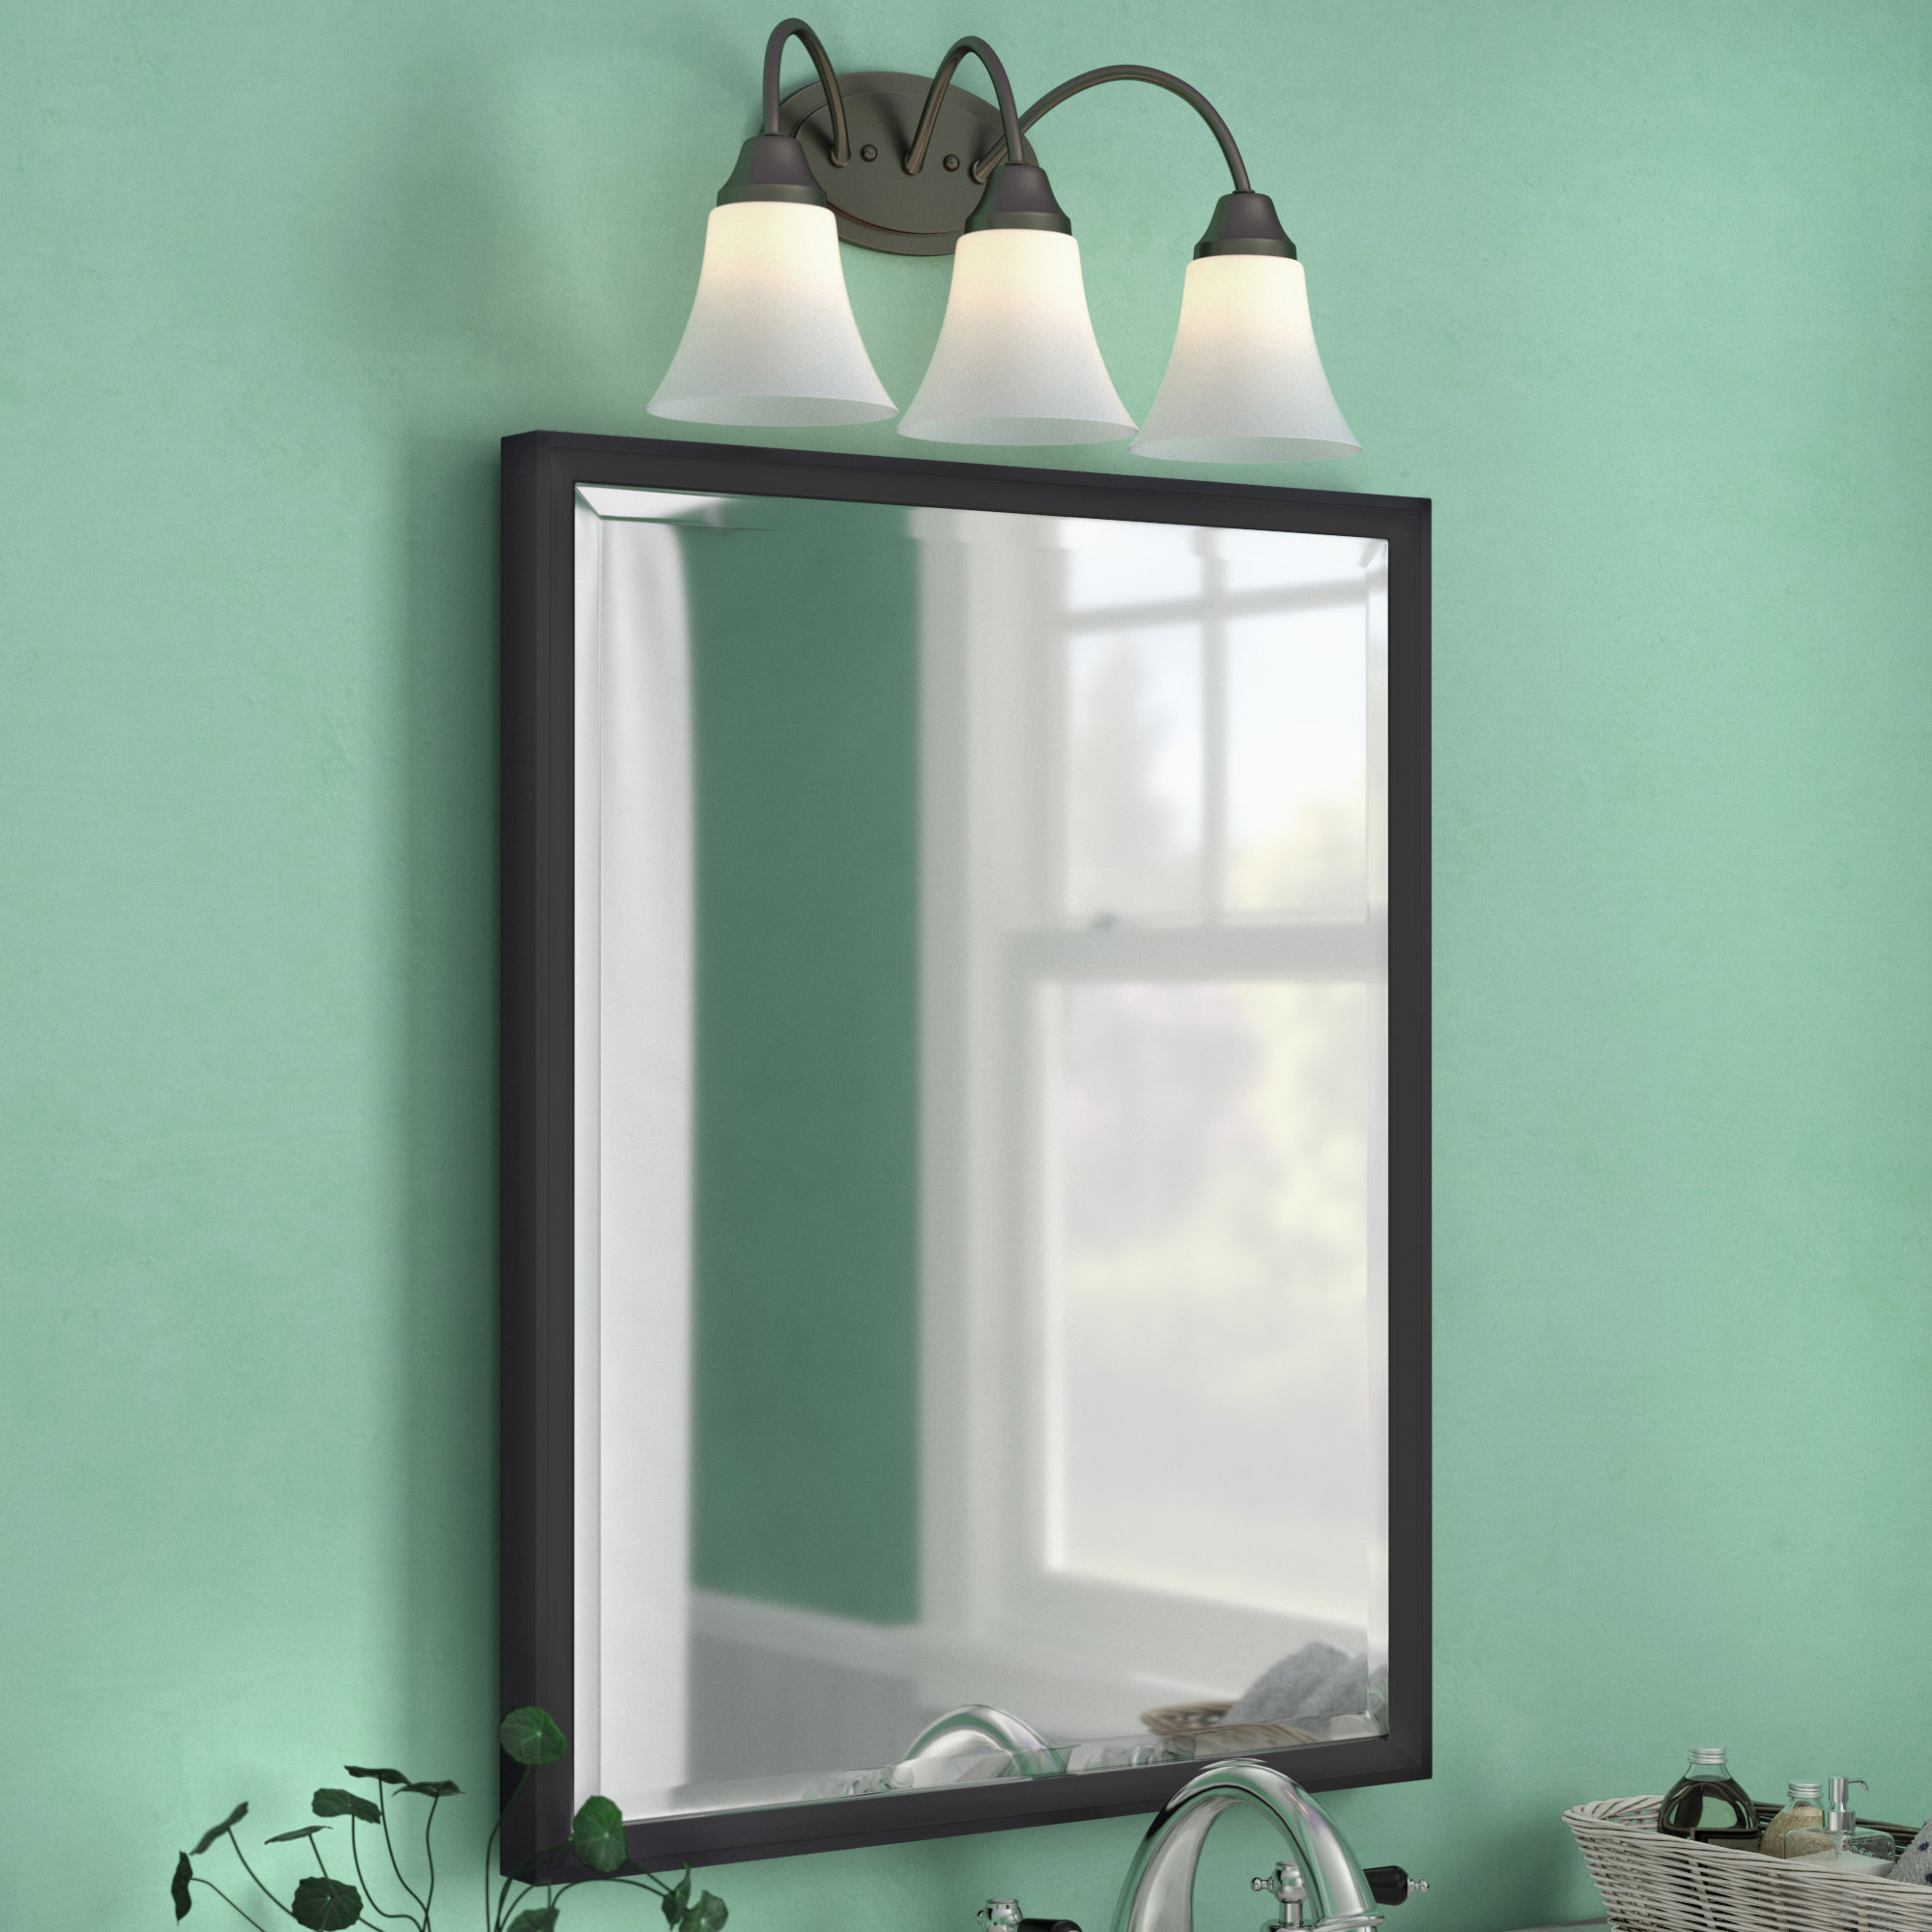 Gatsby Decorative Traditional Beveled Accent Mirror With Regard To Traditional Beveled Accent Mirrors (Image 5 of 20)